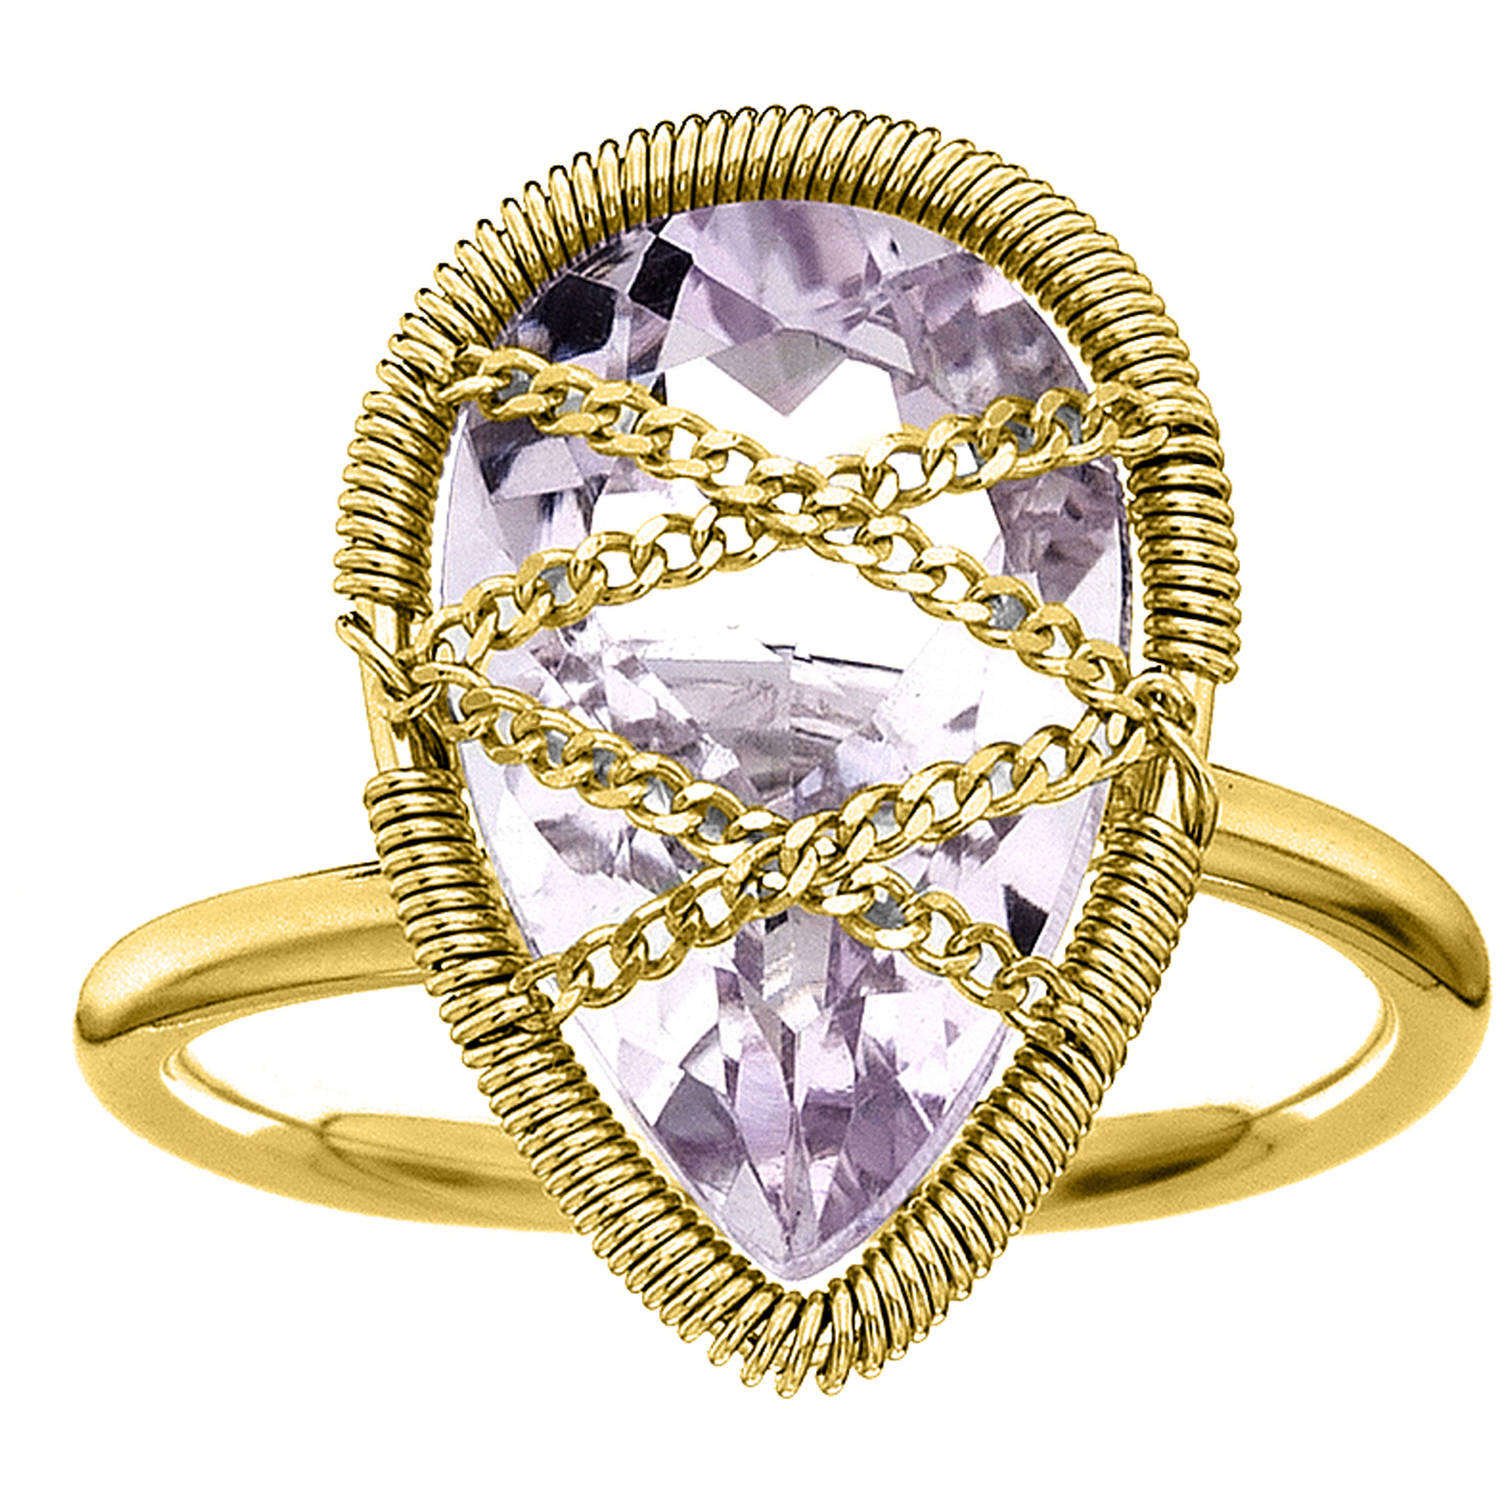 Image of 5th & Main 18kt Gold over Sterling Silver Hand-Wrapped Teardrop Amethyst Stone Ring